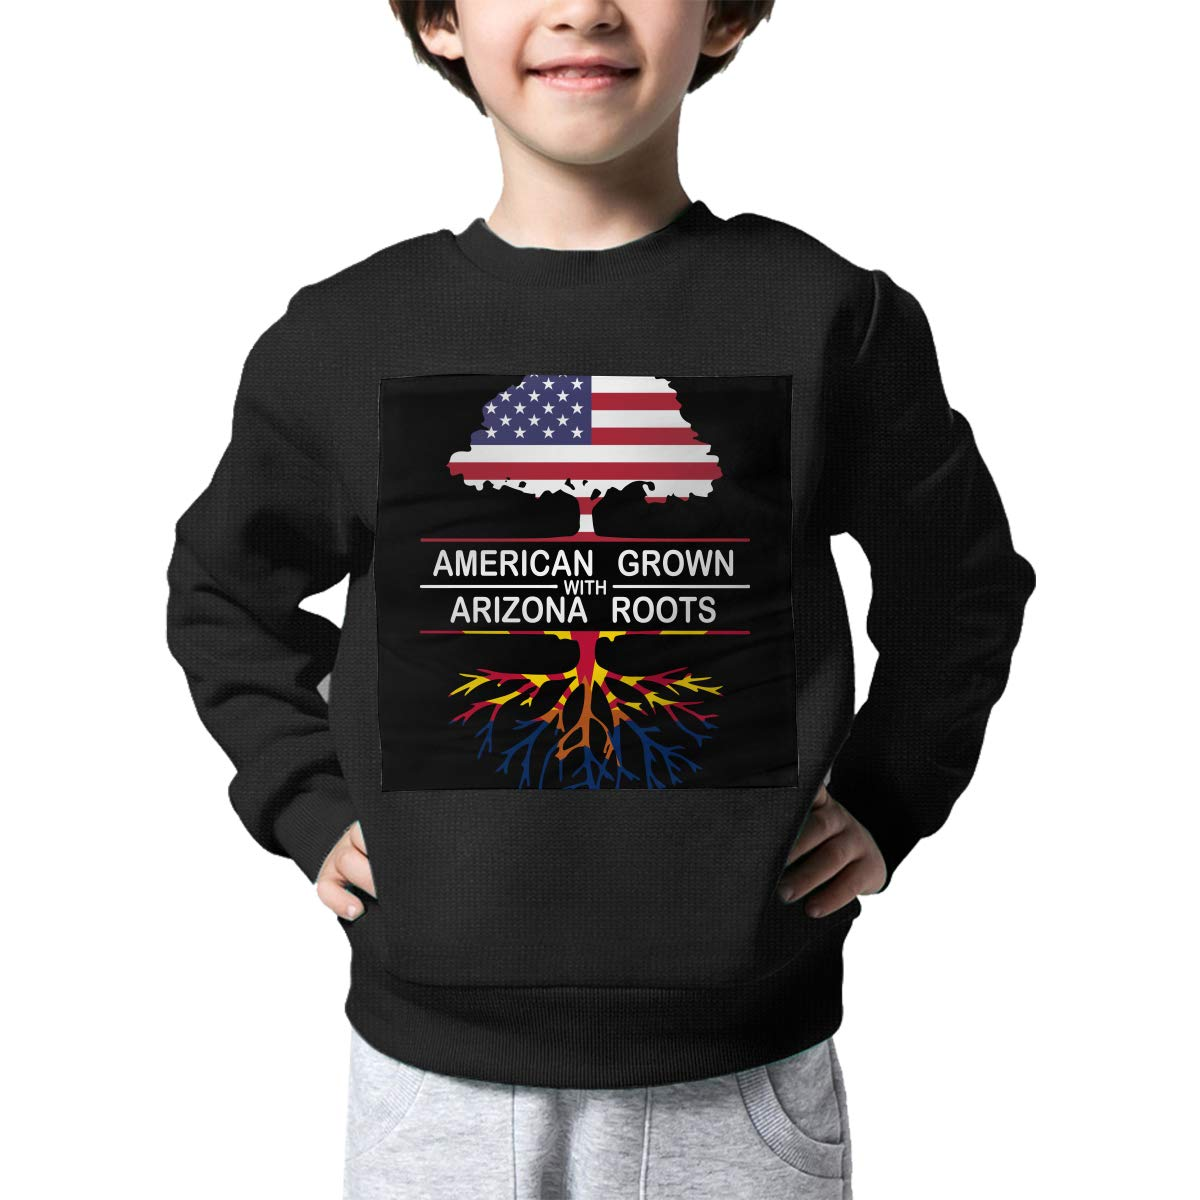 Boys Girls American Grown with Arizona Roots-1 Lovely Sweaters Soft Warm Unisex Children Kids Sweater